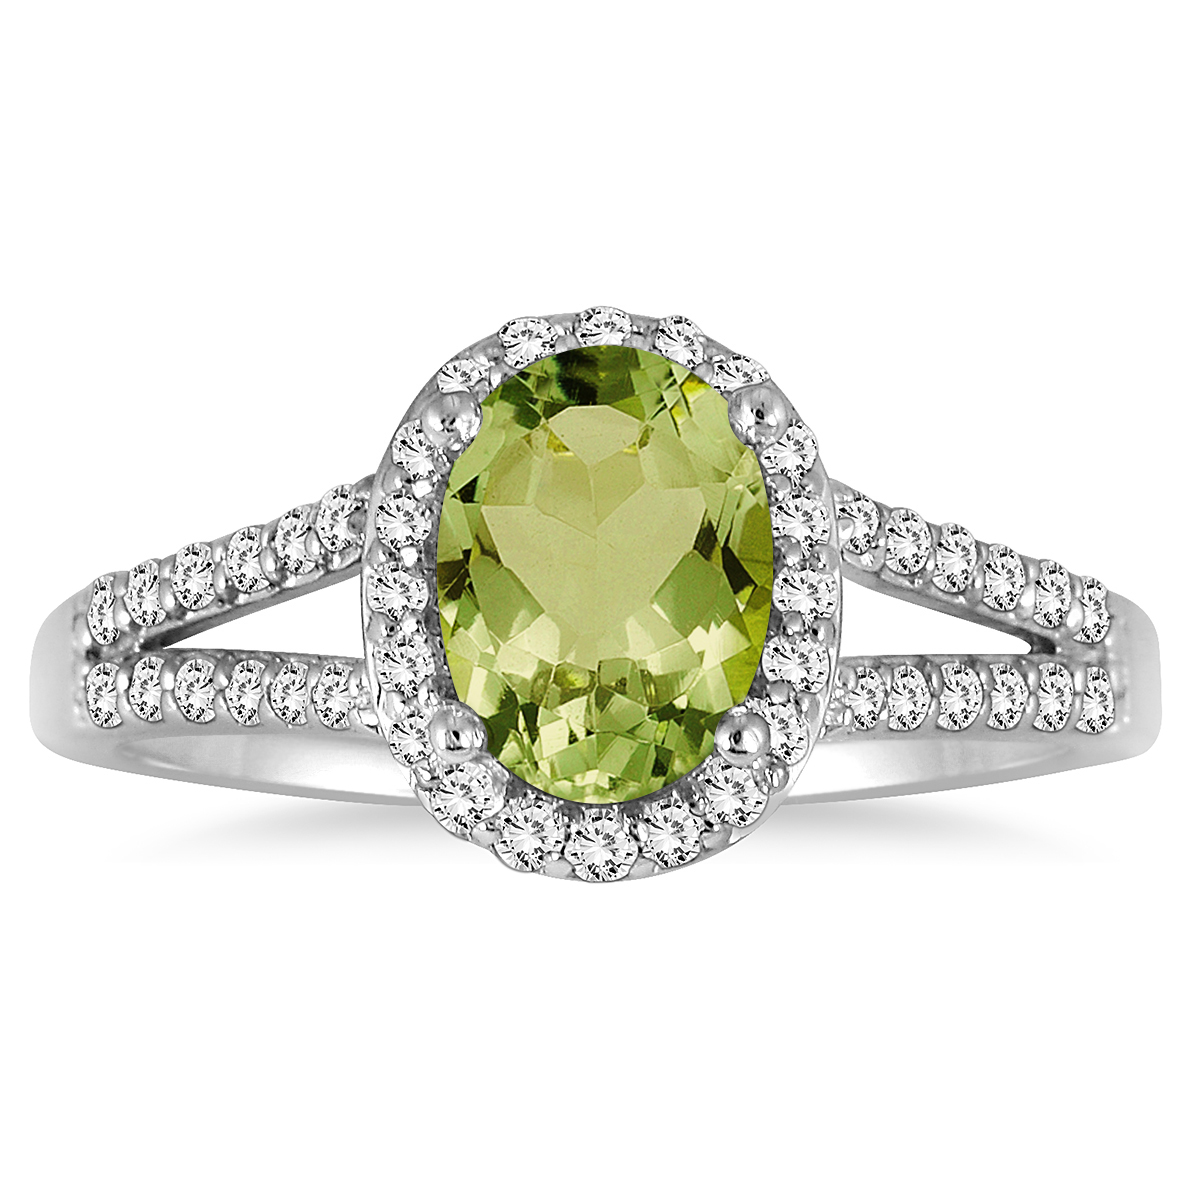 1 1/4 Carat Oval Peridot and Diamond Ring in 10K White Gold